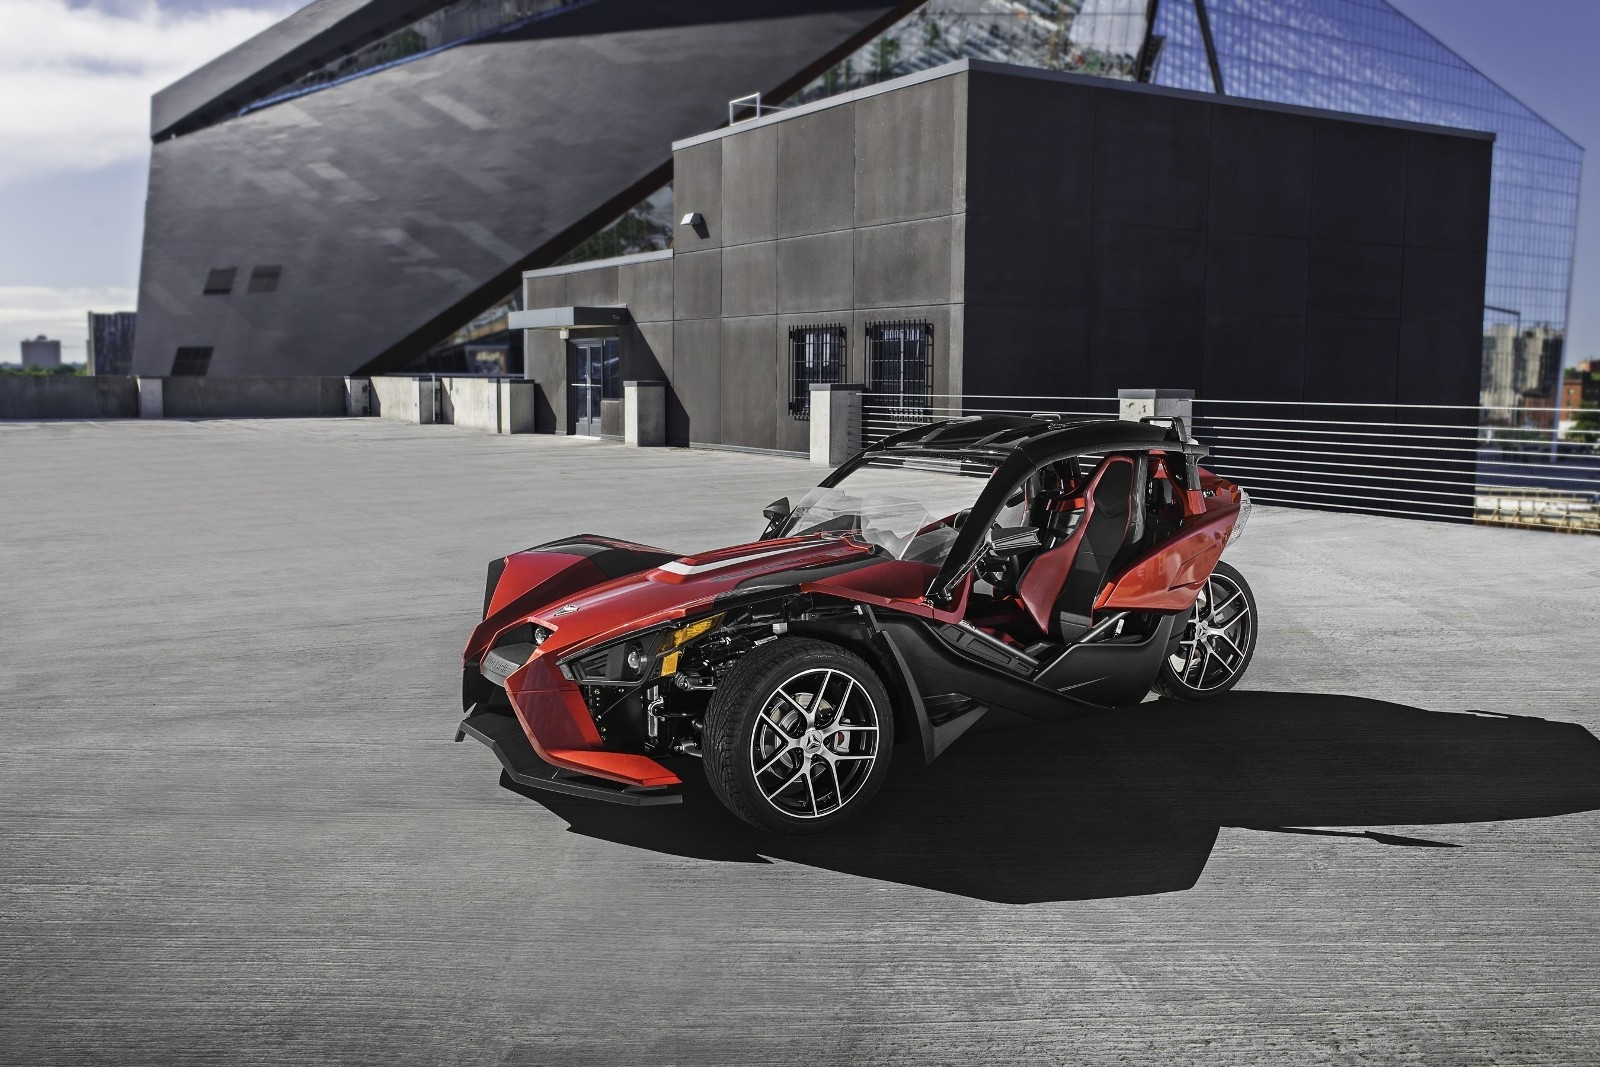 2017 Polaris Slingshot Comes In Premium Trim And More